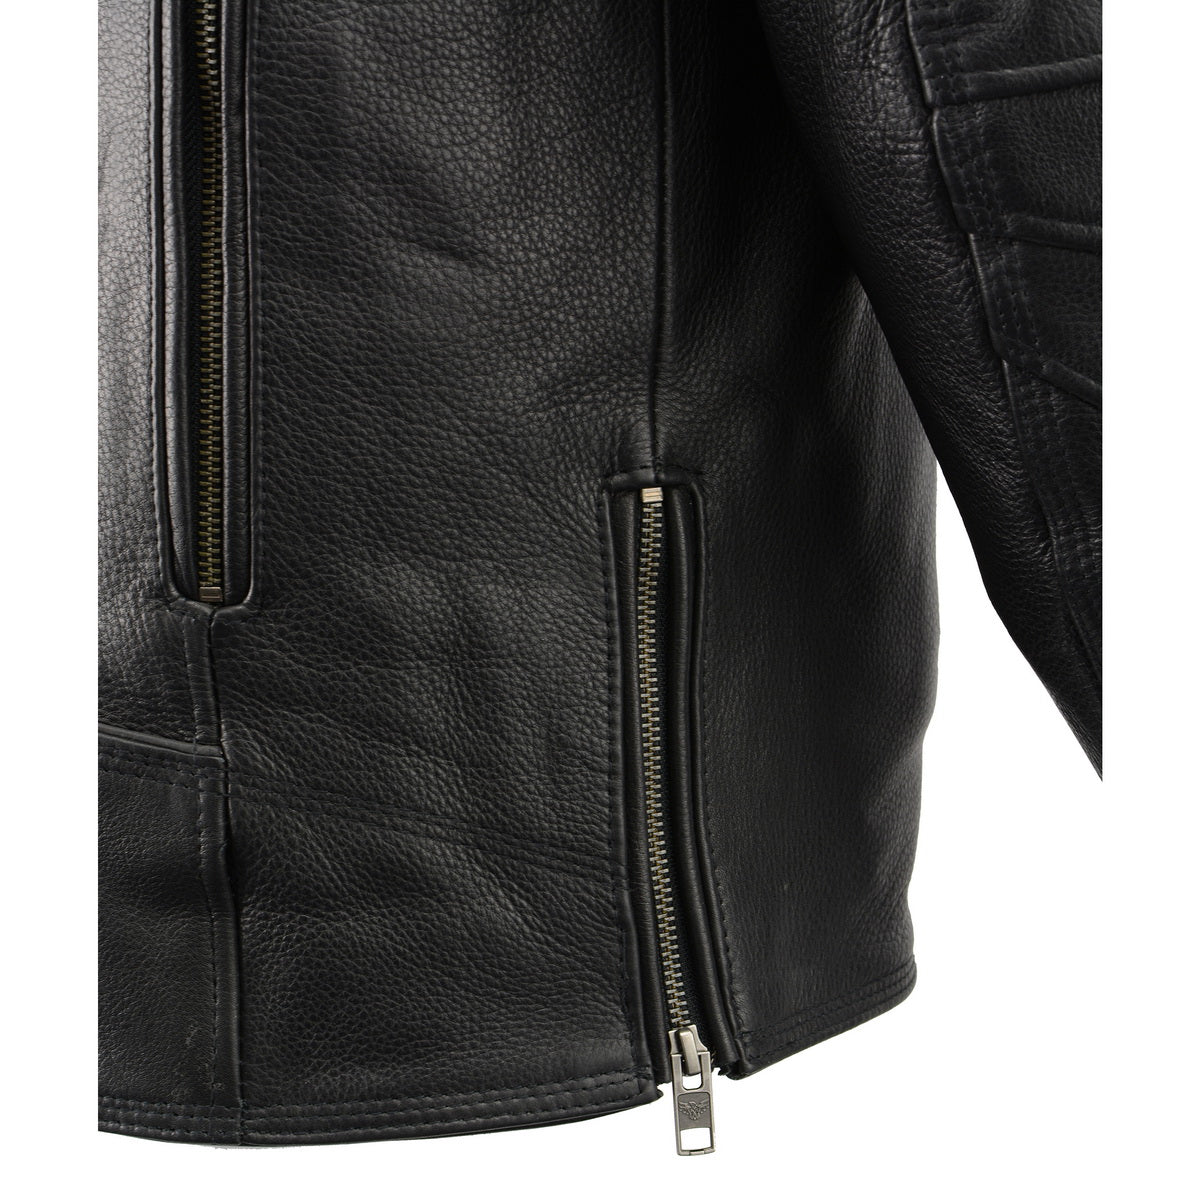 Milwaukee Leather MLM1515 Men's 'Triple Stitch' Beltless Black Leather